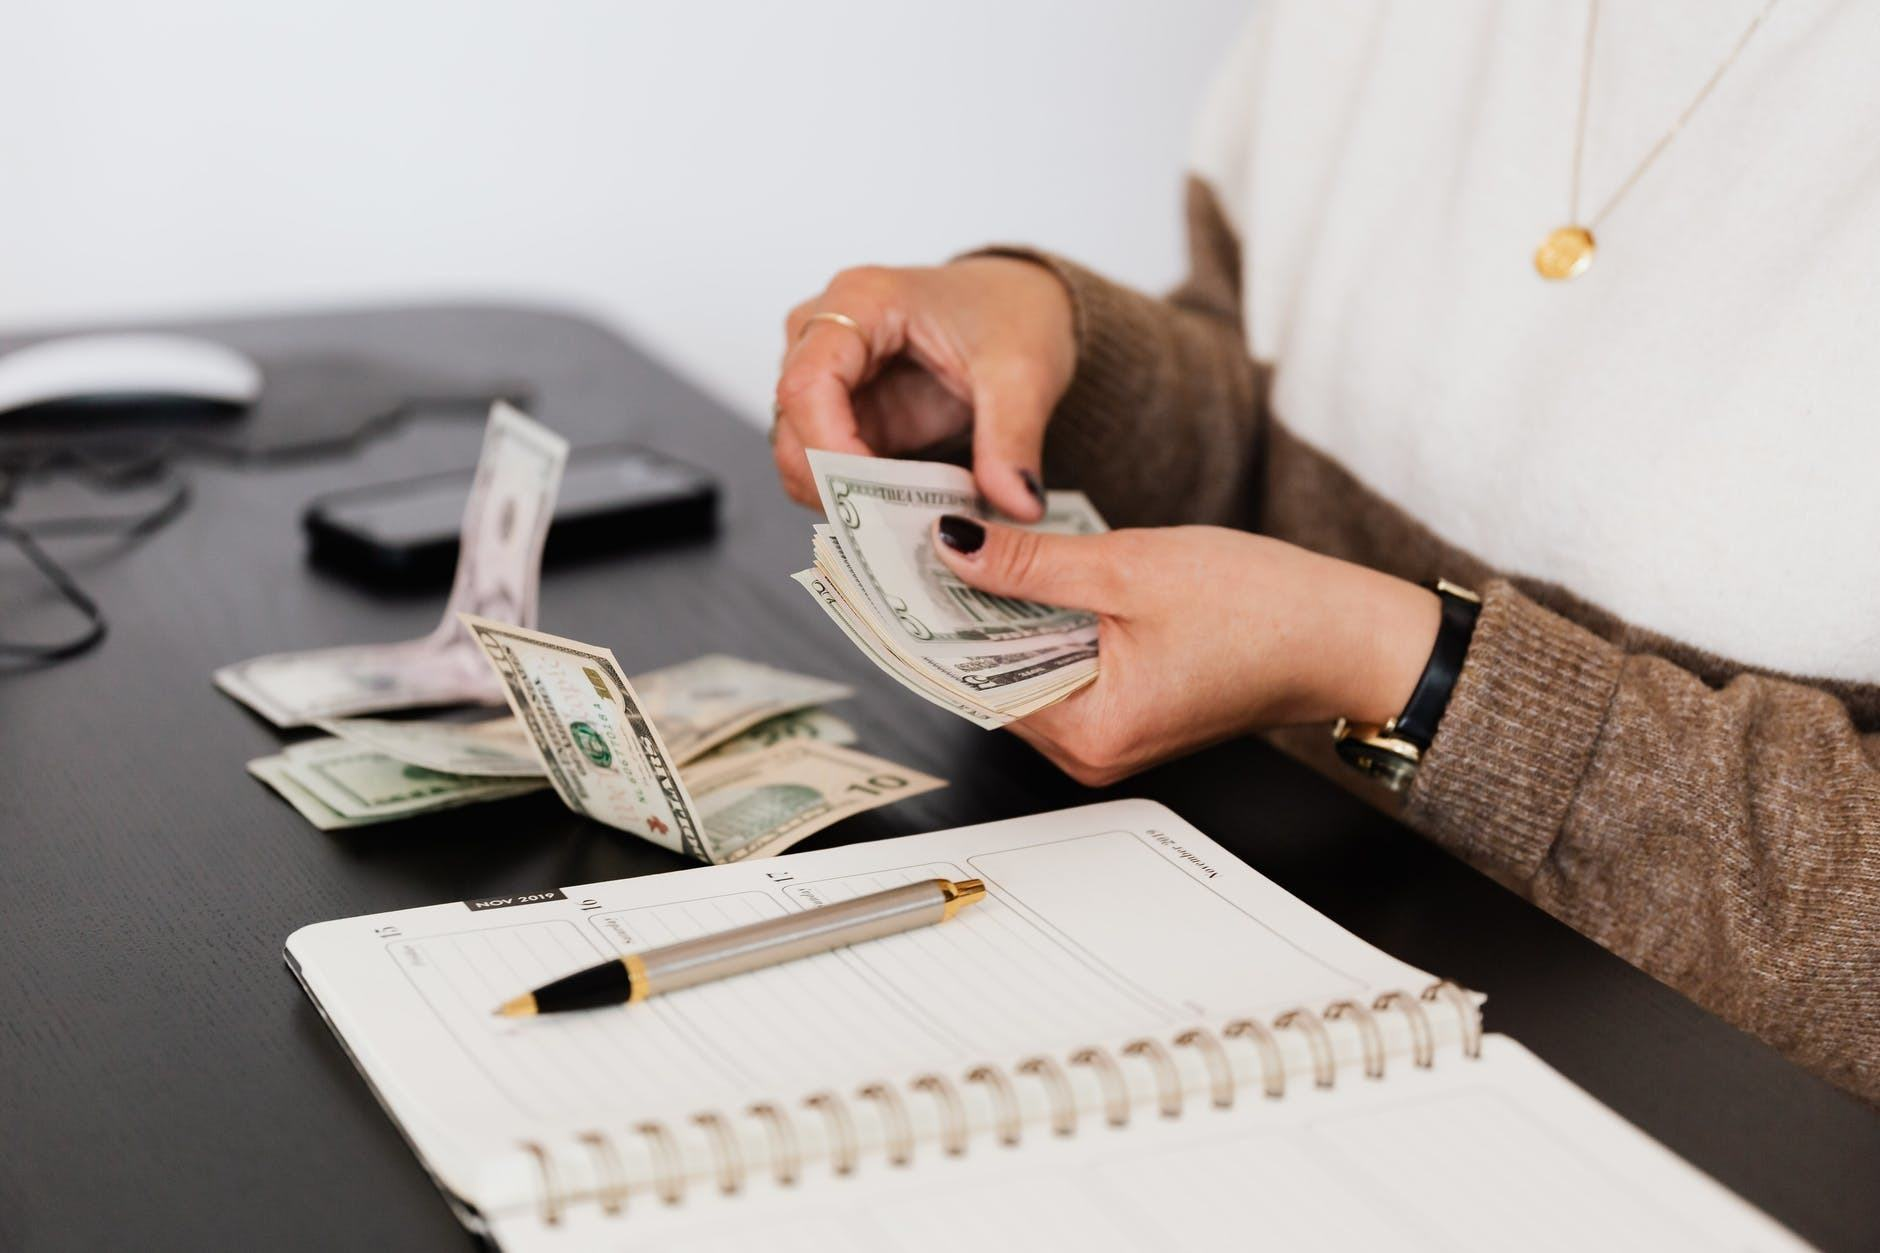 10 Ways of Frugal Living to Save Money in 2021